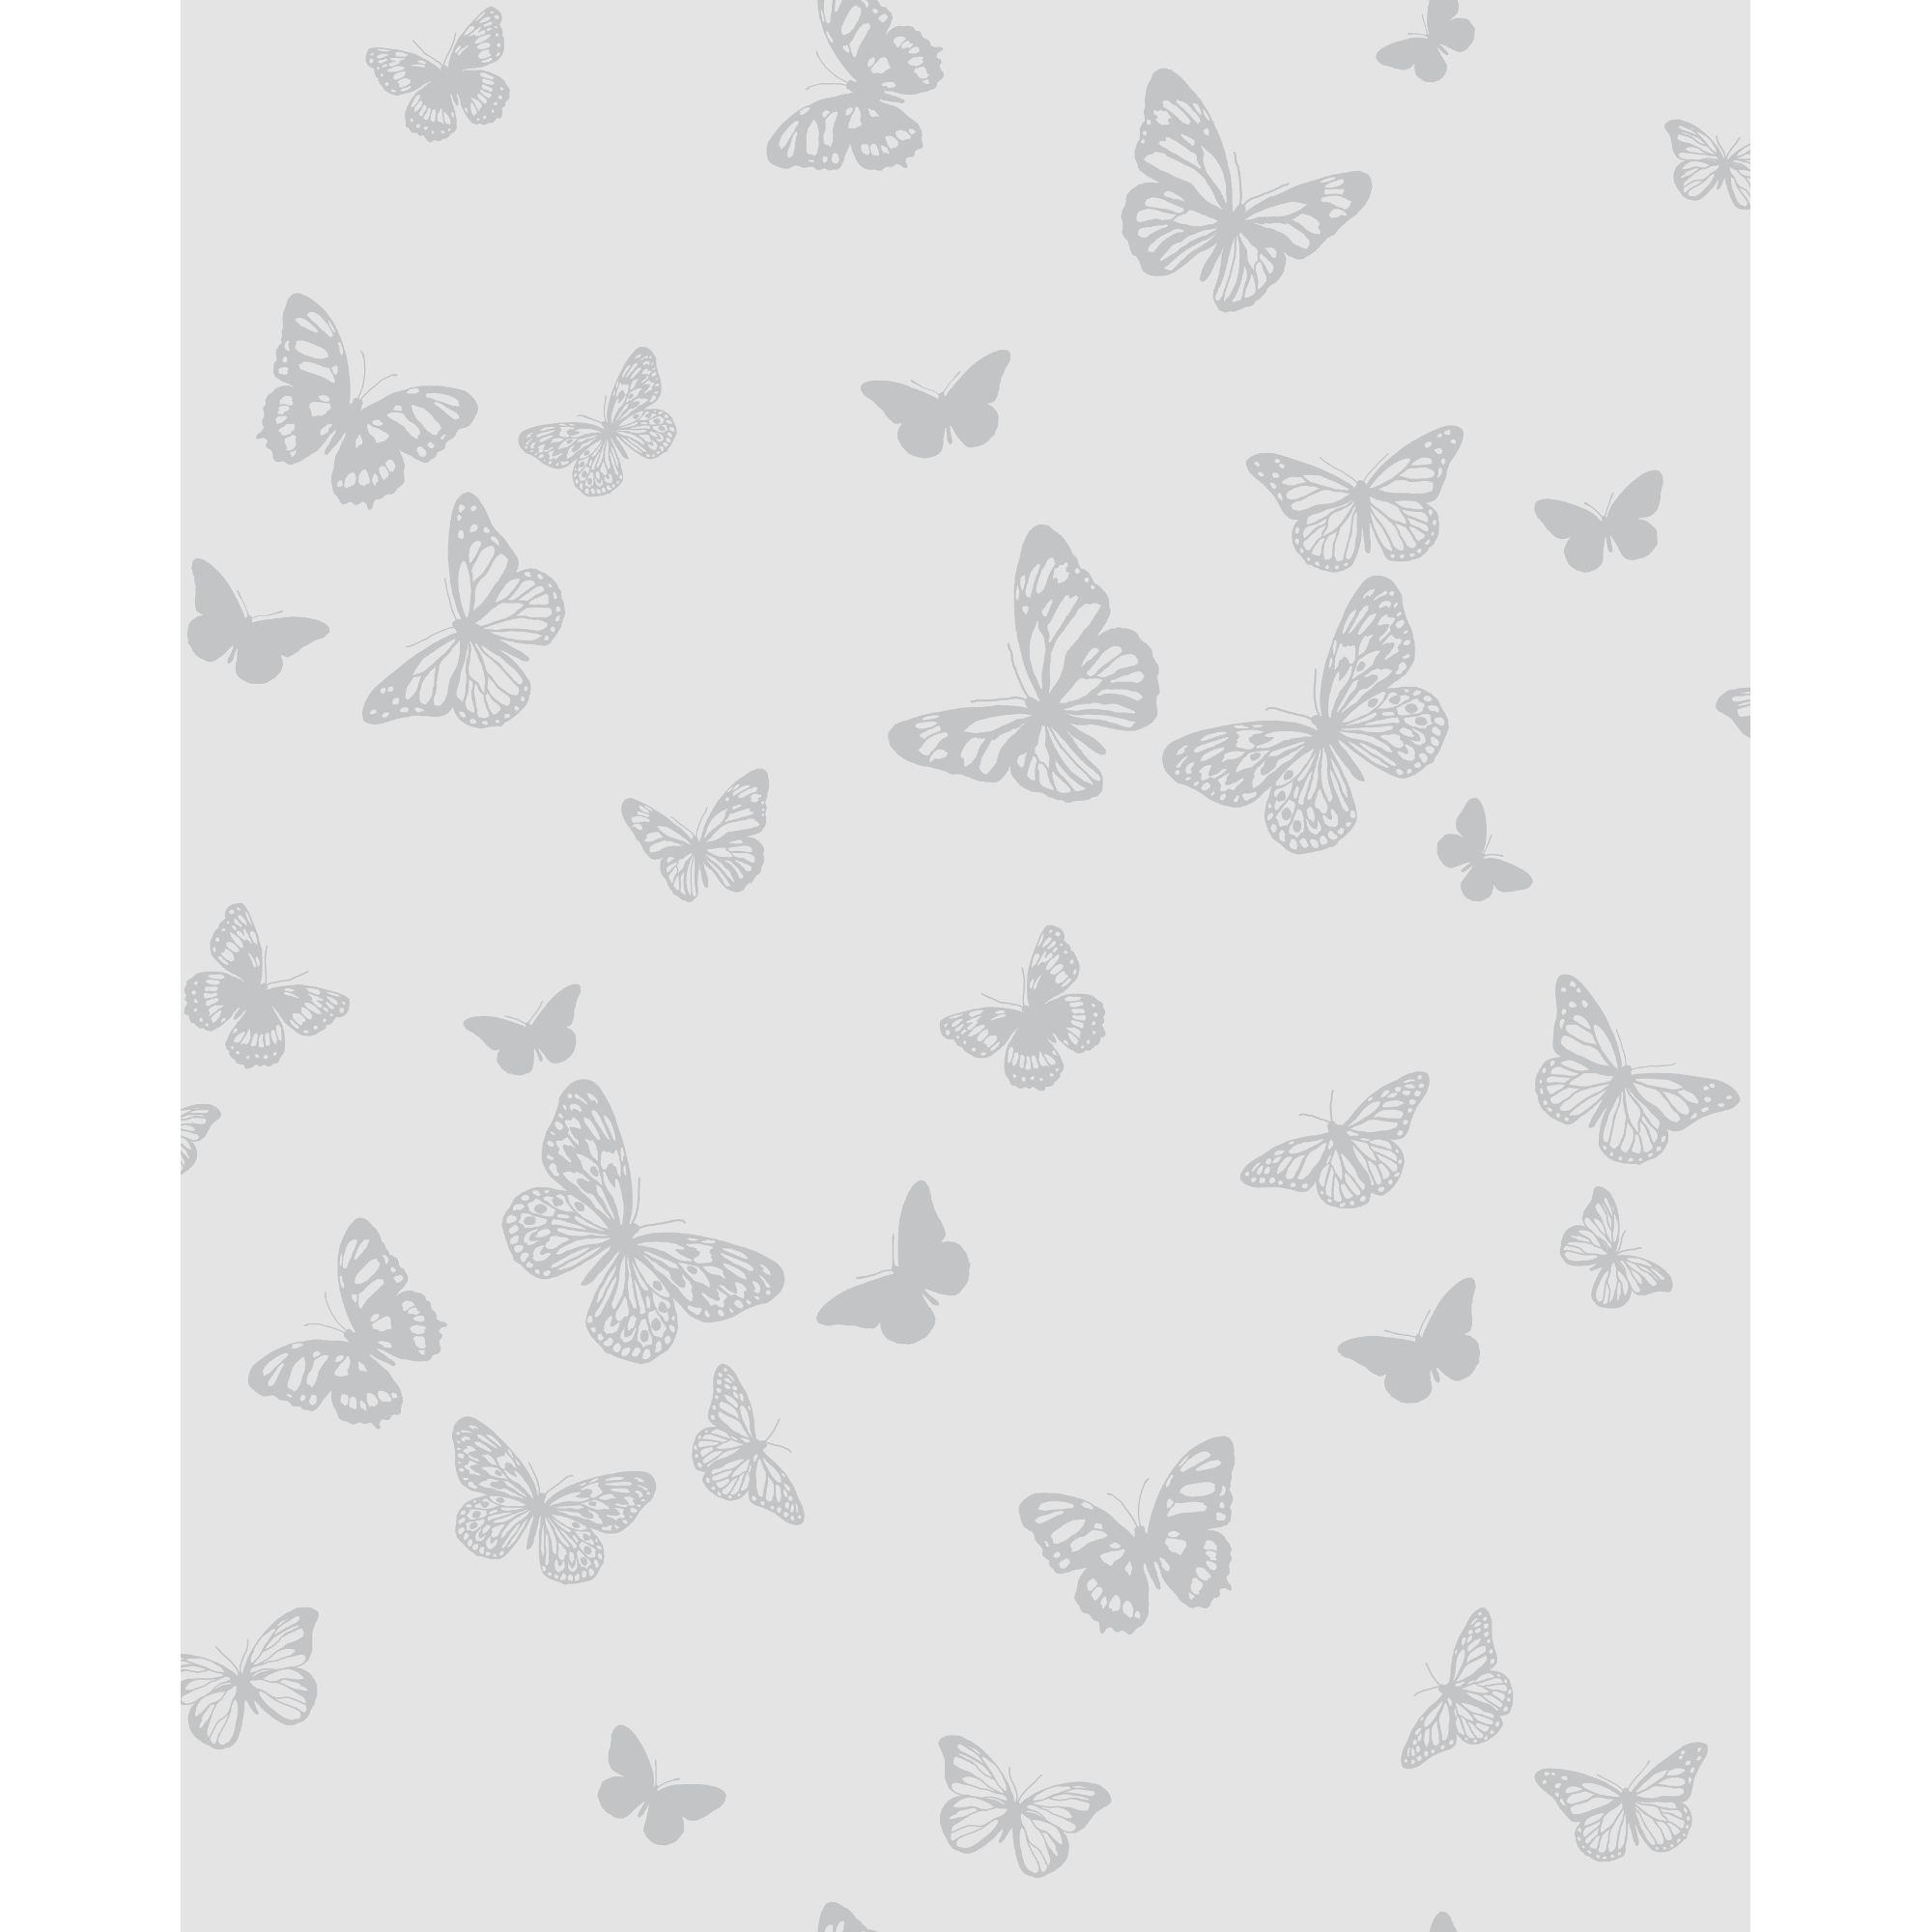 Silver Wallpaper For Bedrooms Butterfly Wallpaper Uk Google Search New House Pinterest